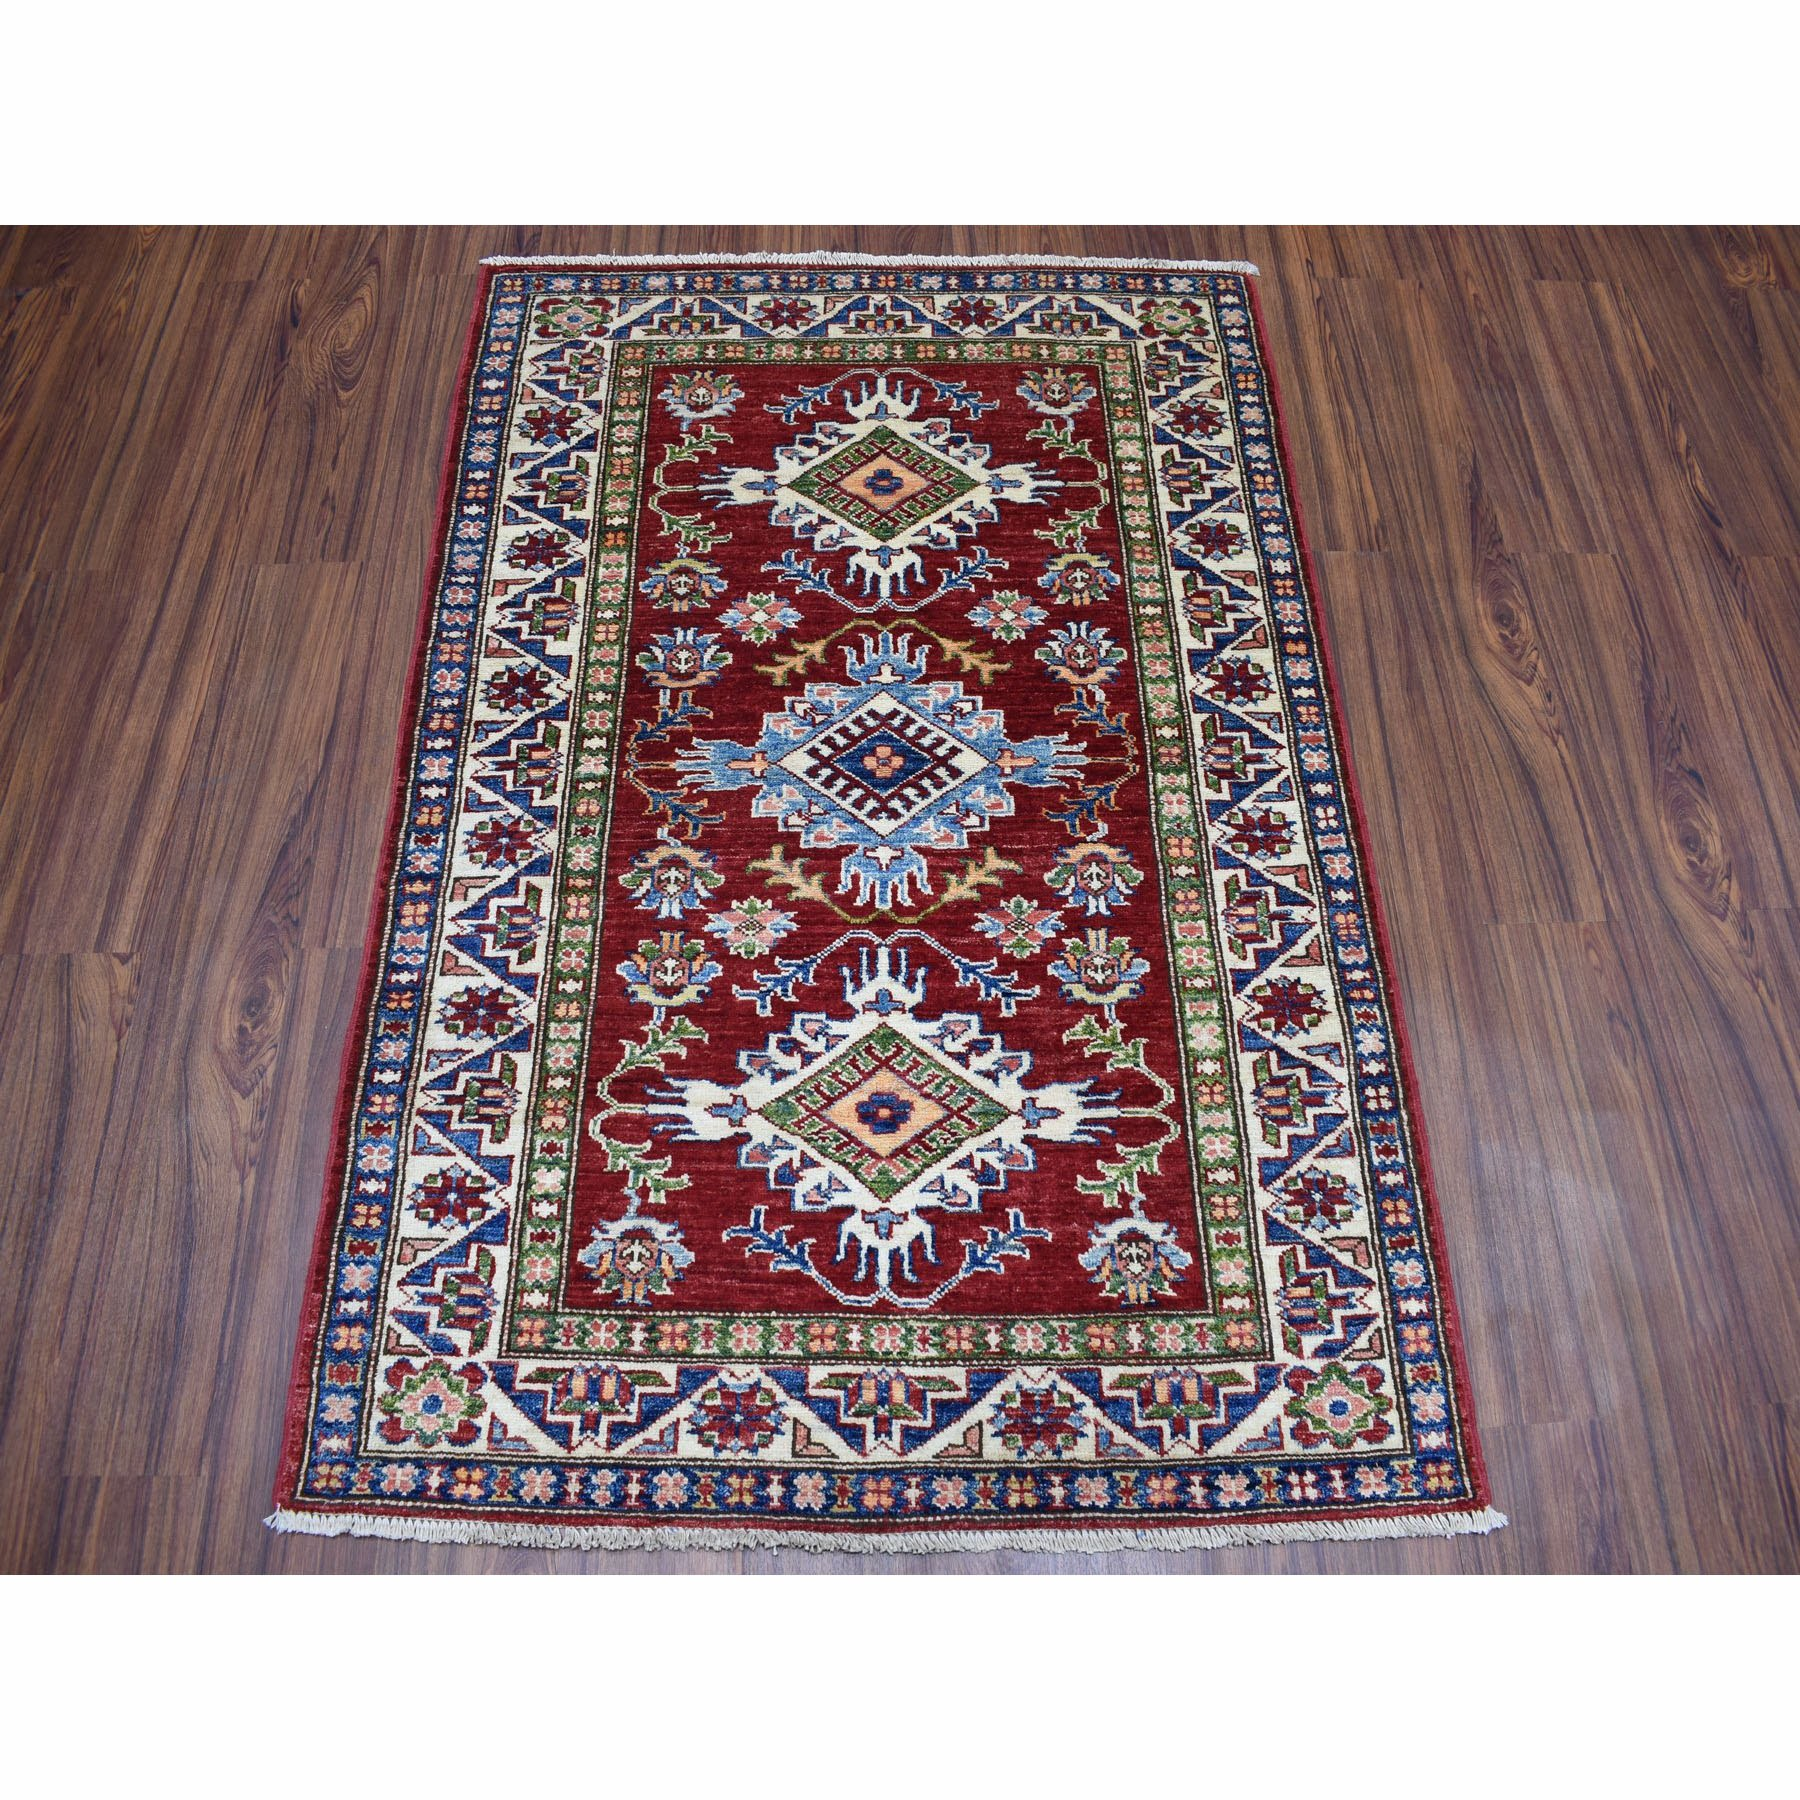 "3'4""x4'8"" Red Super Kazak Pure Wool Geometric Design Hand-Knotted Oriental Rug"